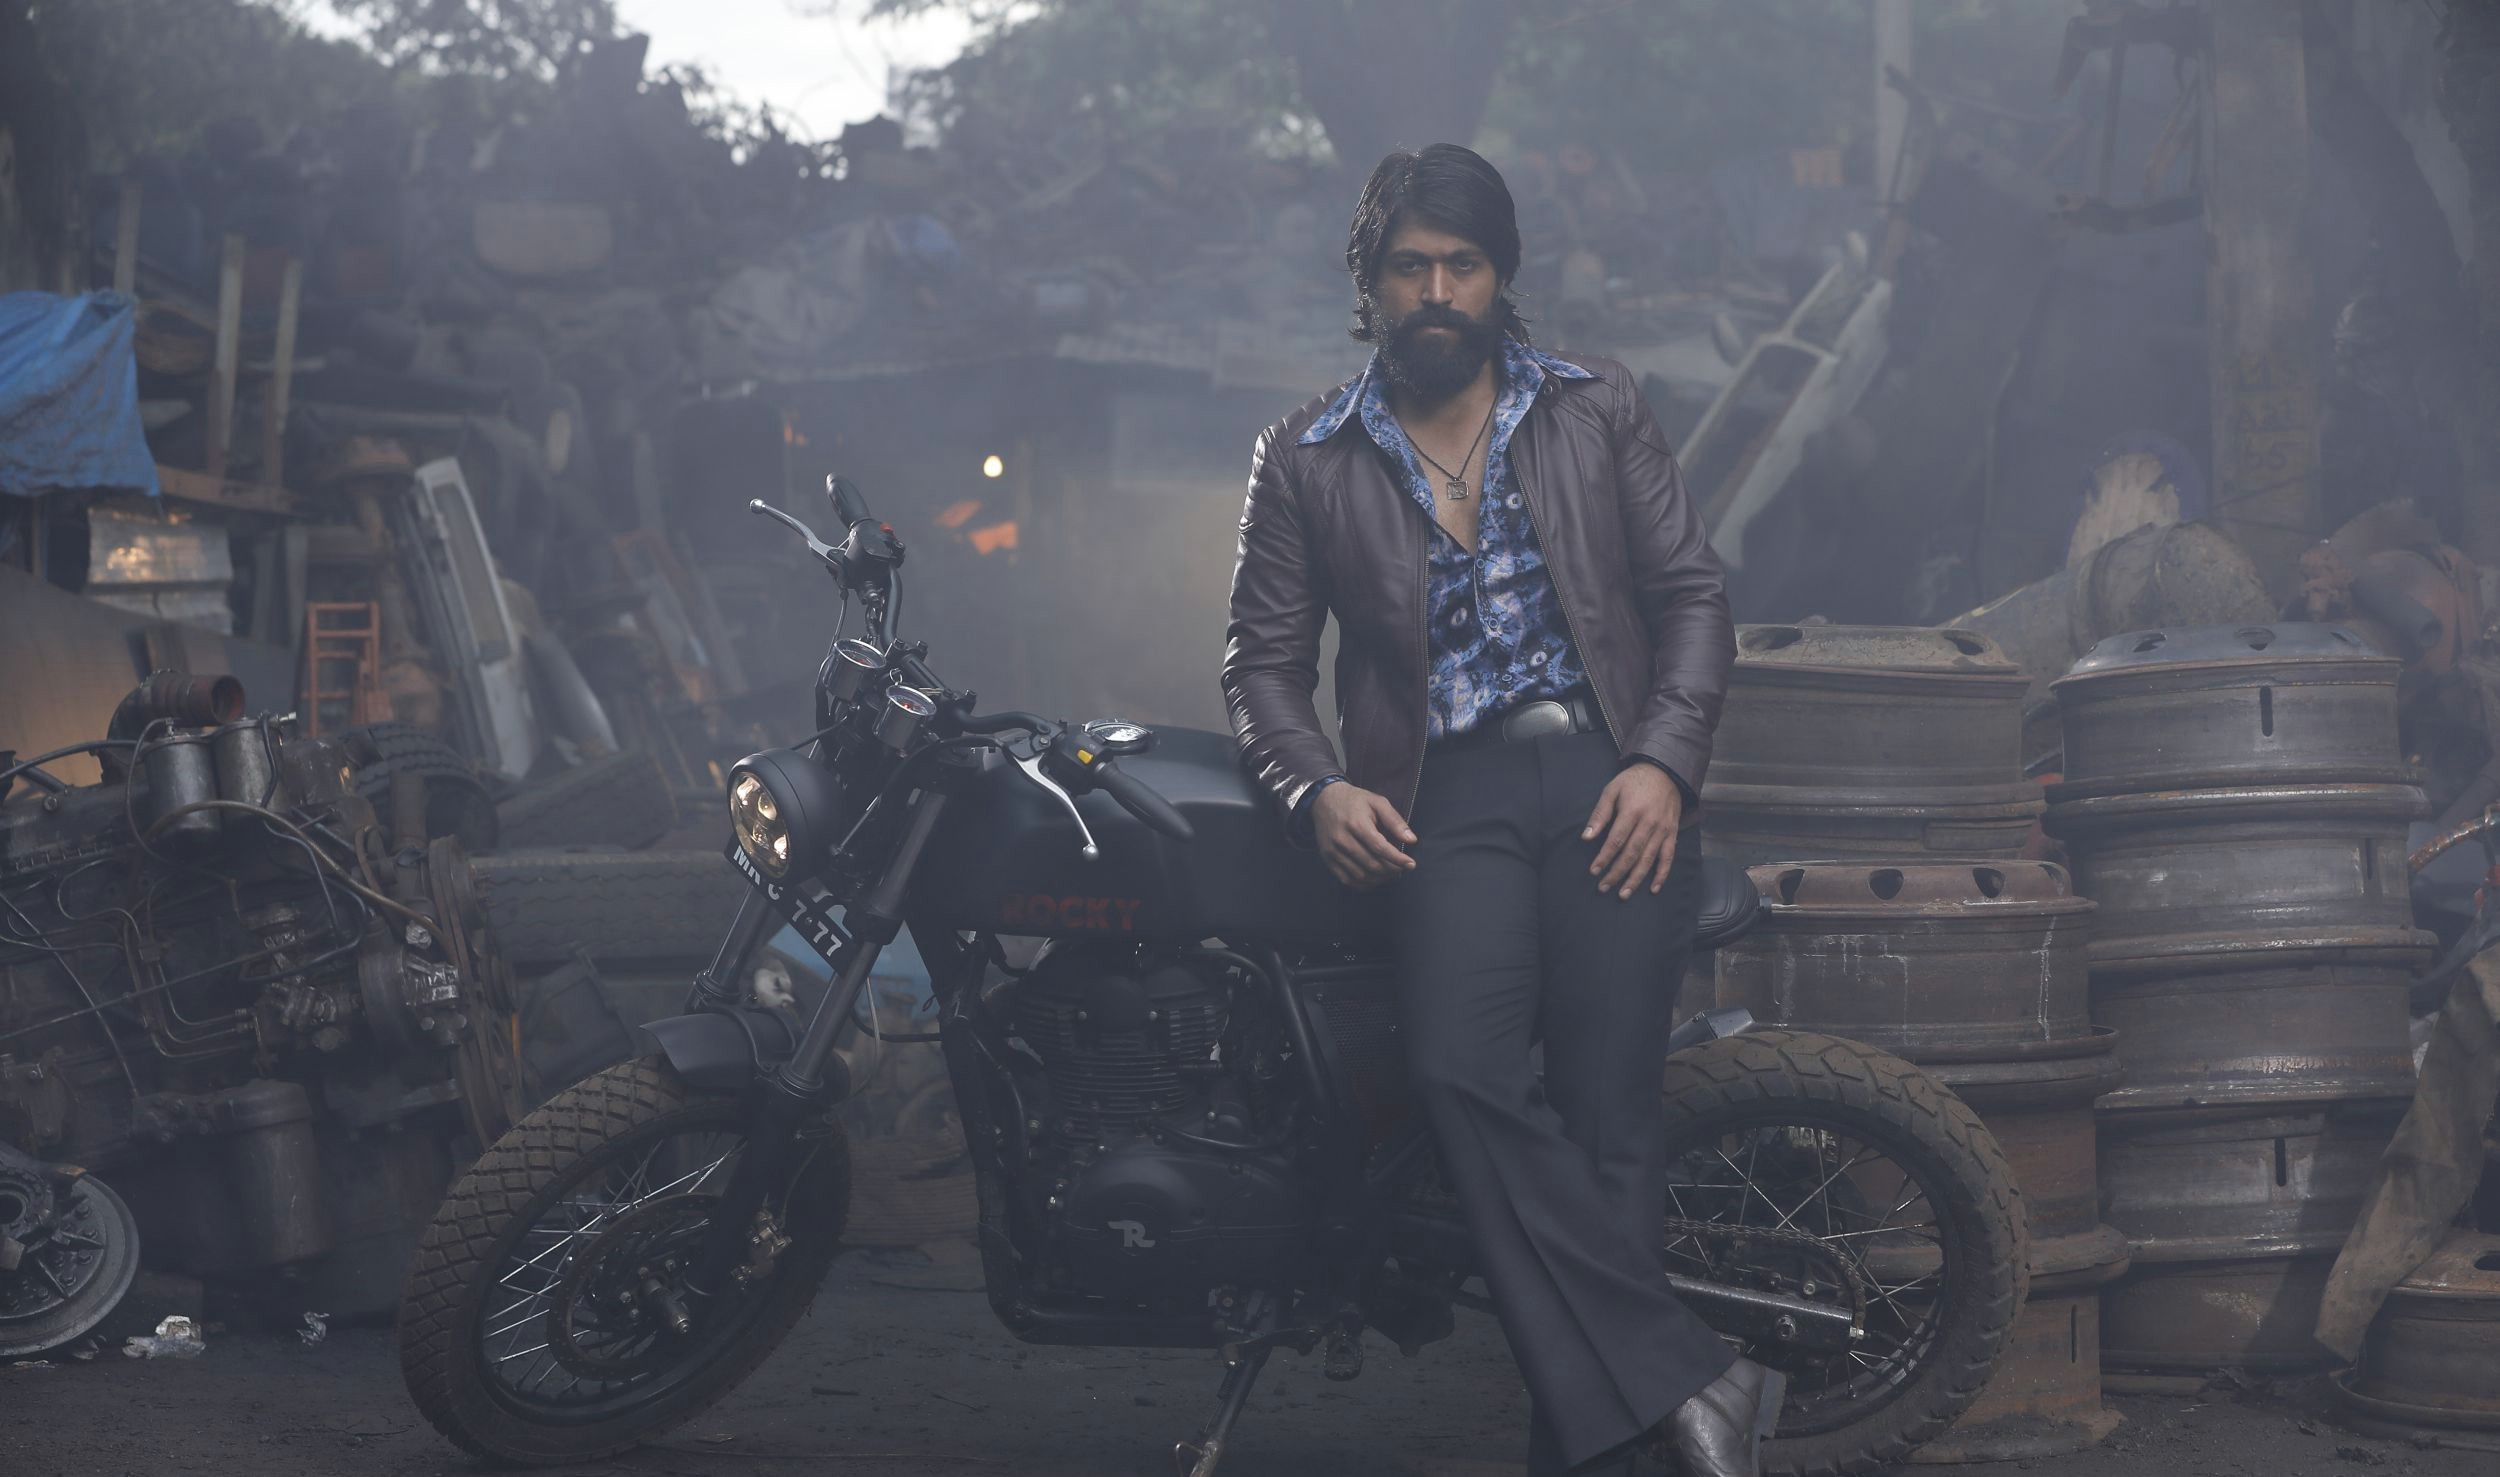 kgf-movie-hd-photos-3